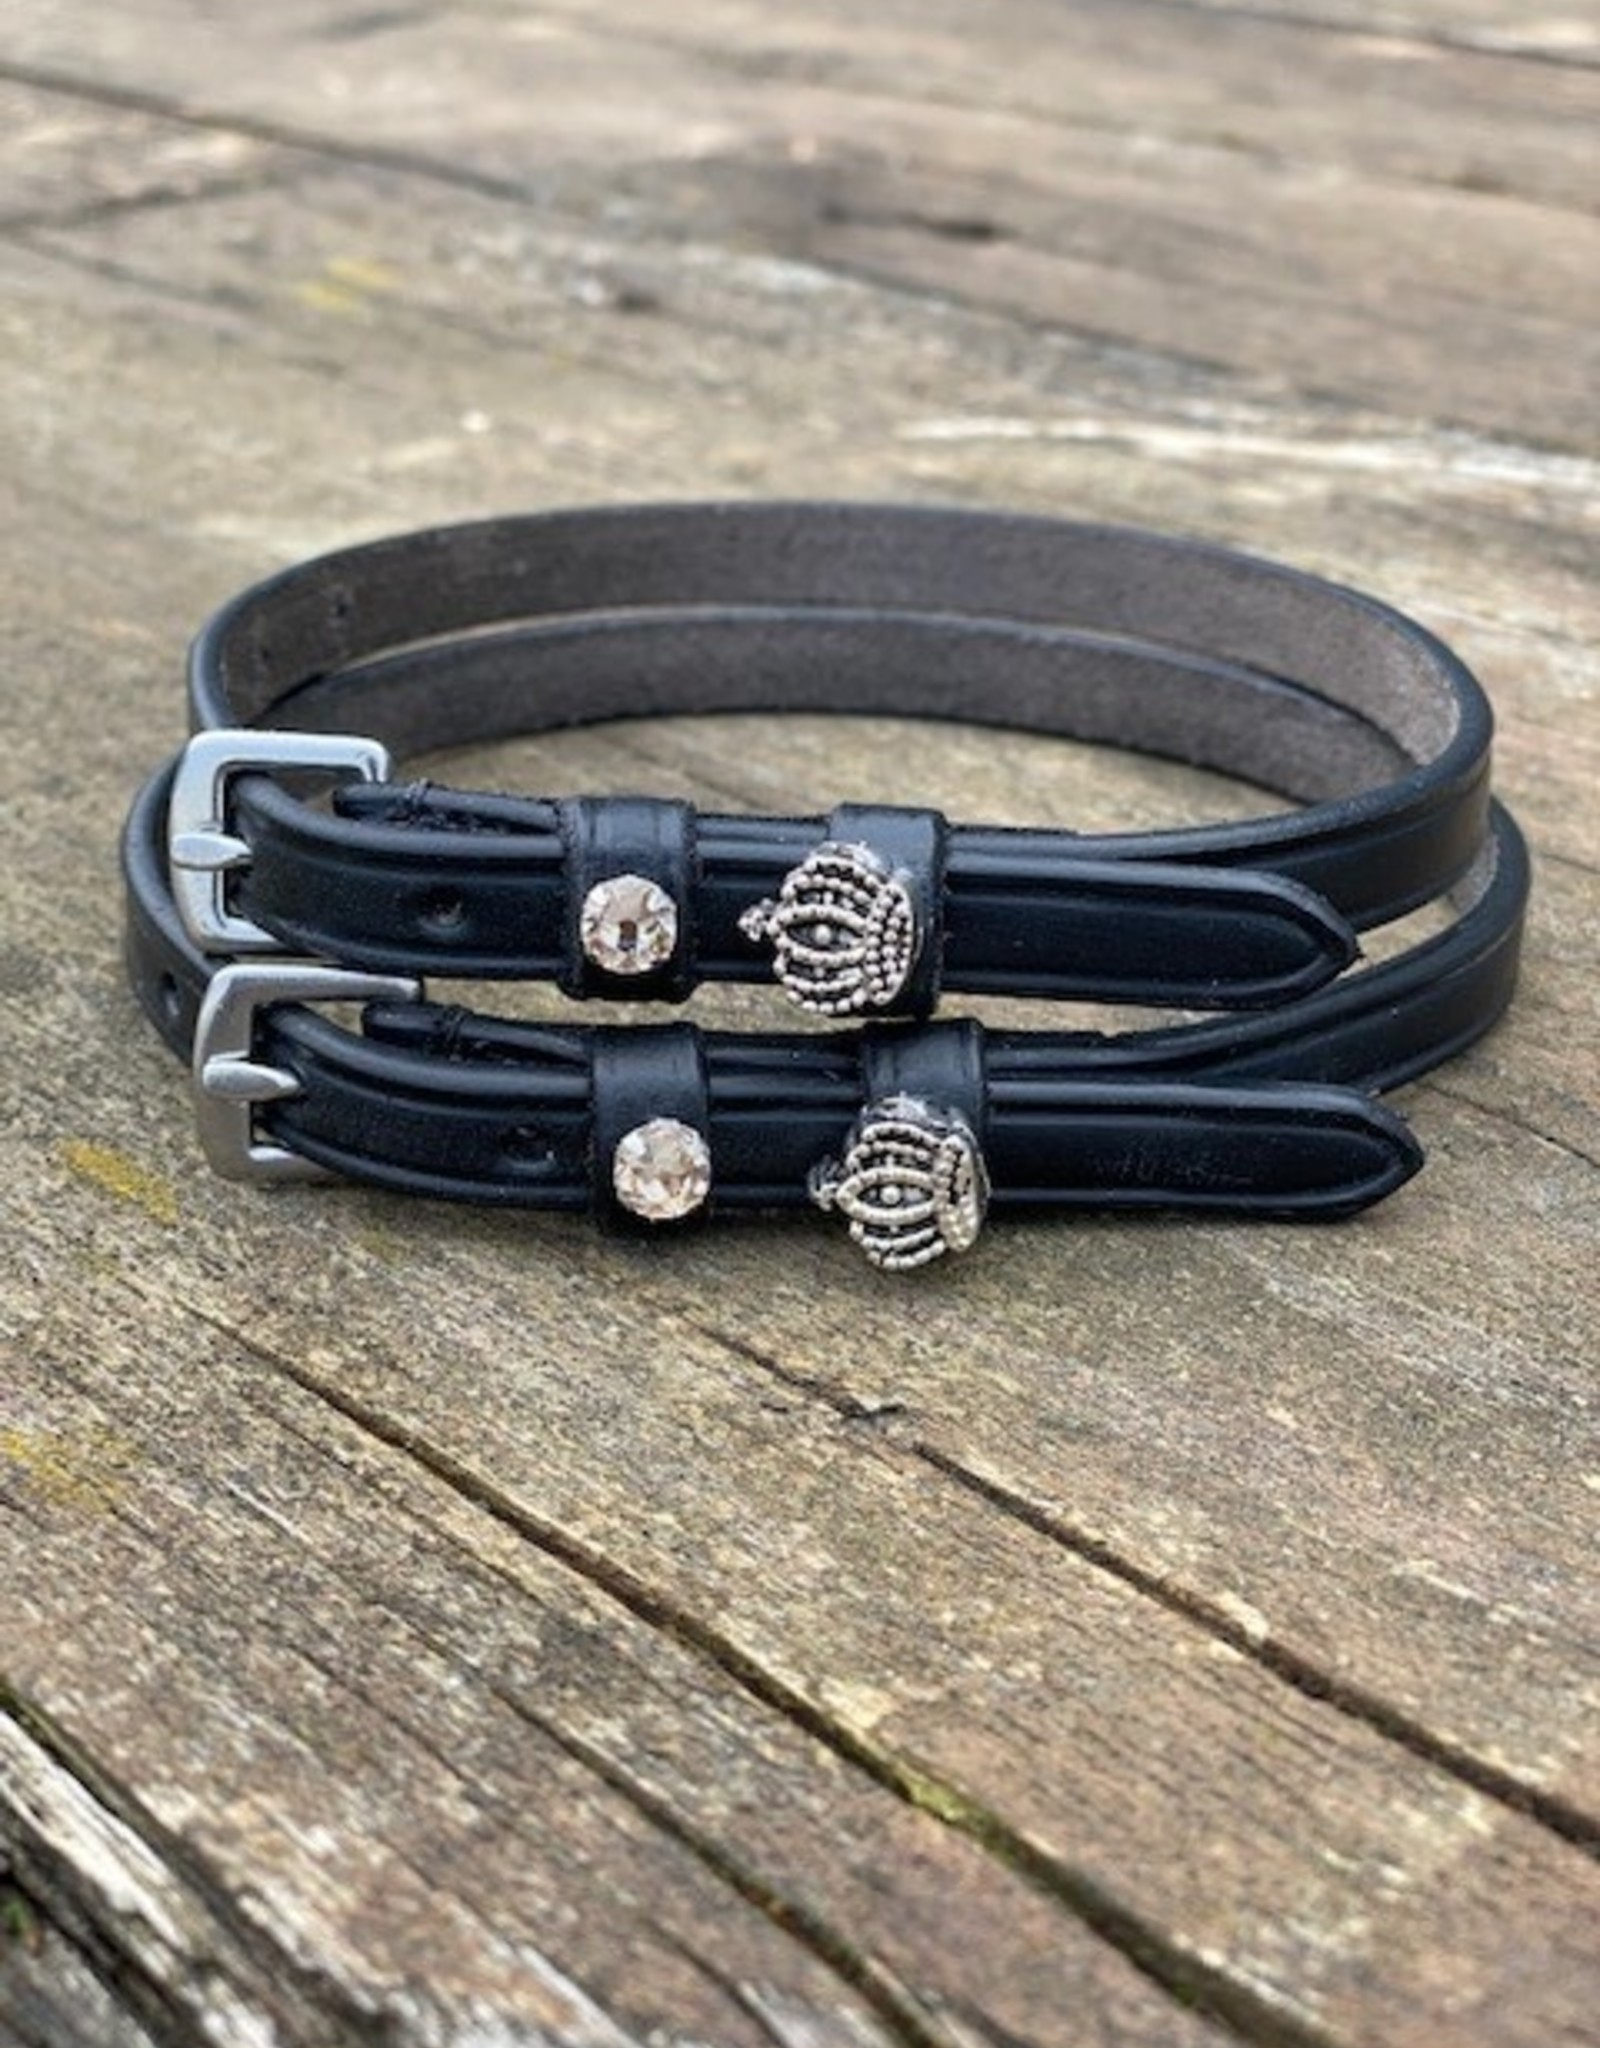 CHROME HORSE BOUTIQUE SPUR STRAPS WITH CHARMS